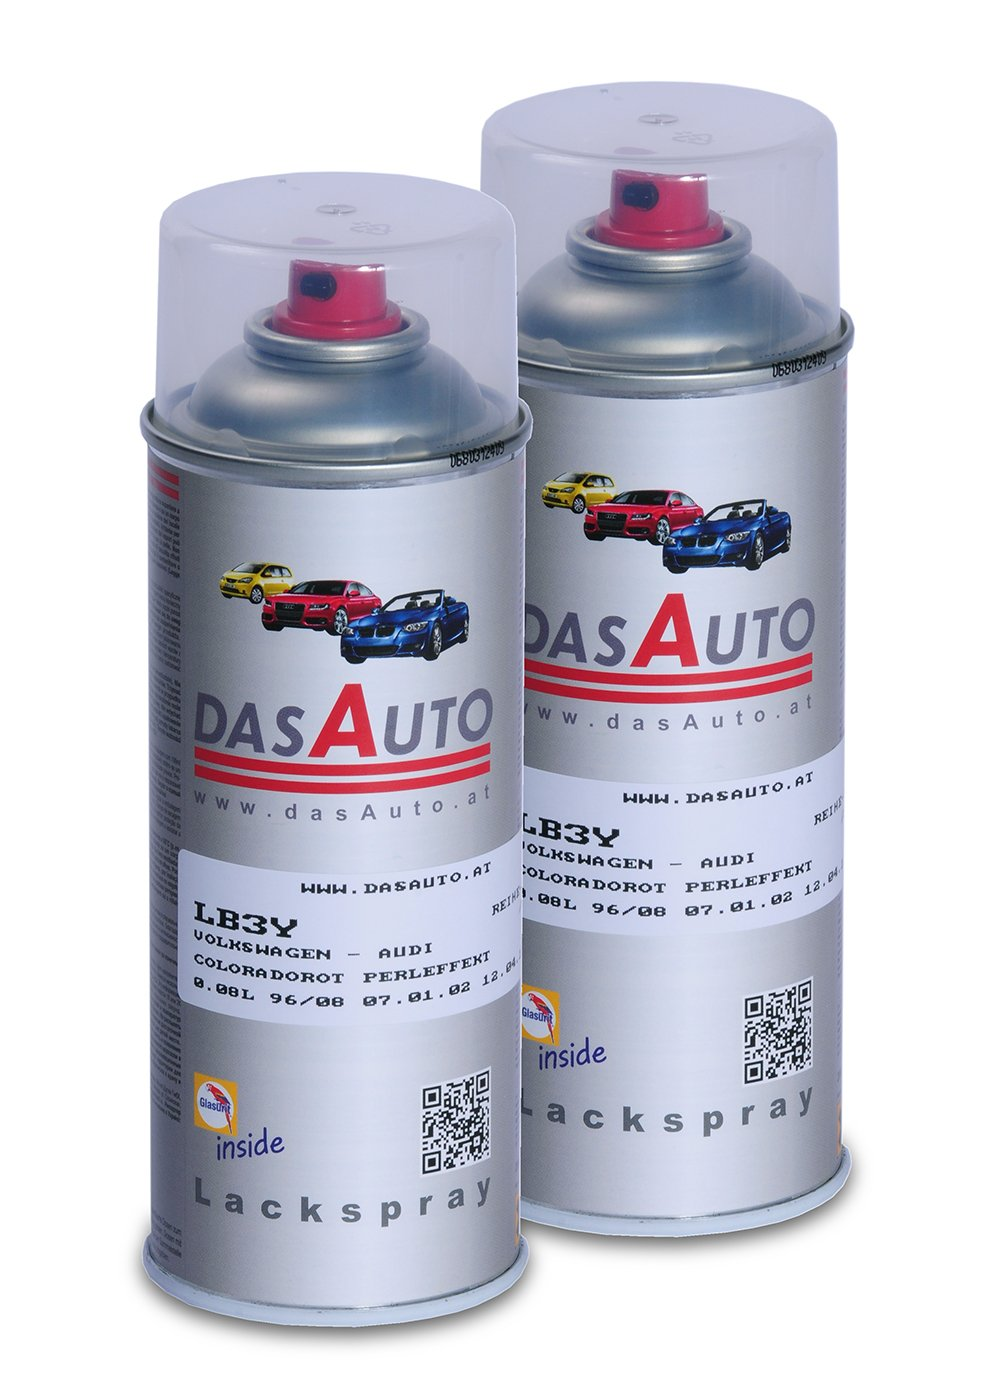 2 x dasauto Vernis Spray glasurit série 55 Inside 400 ml